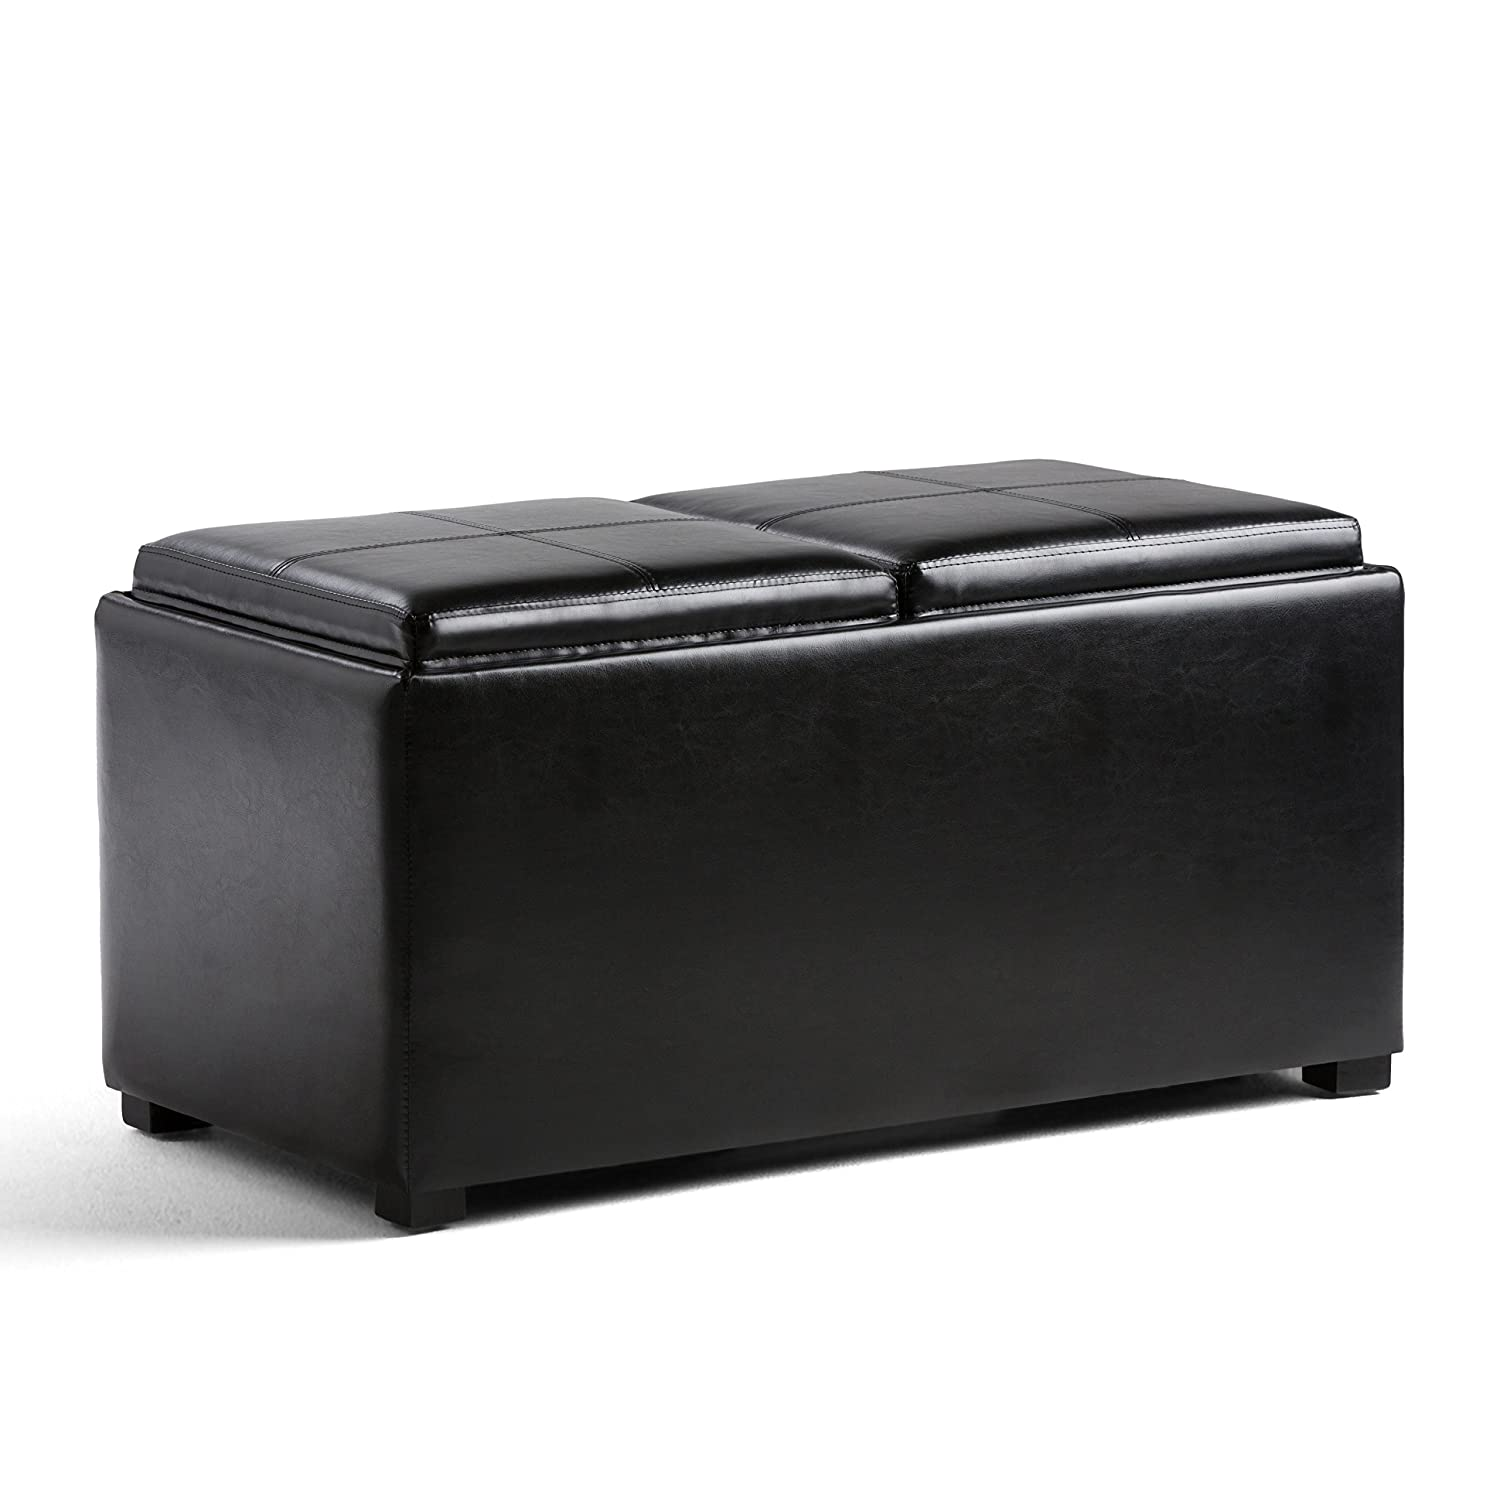 Simpli Home AY-F-15B-BL Avalon 35 inch Wide ContemporaryStorage Ottoman in Midnight Black Faux Leather